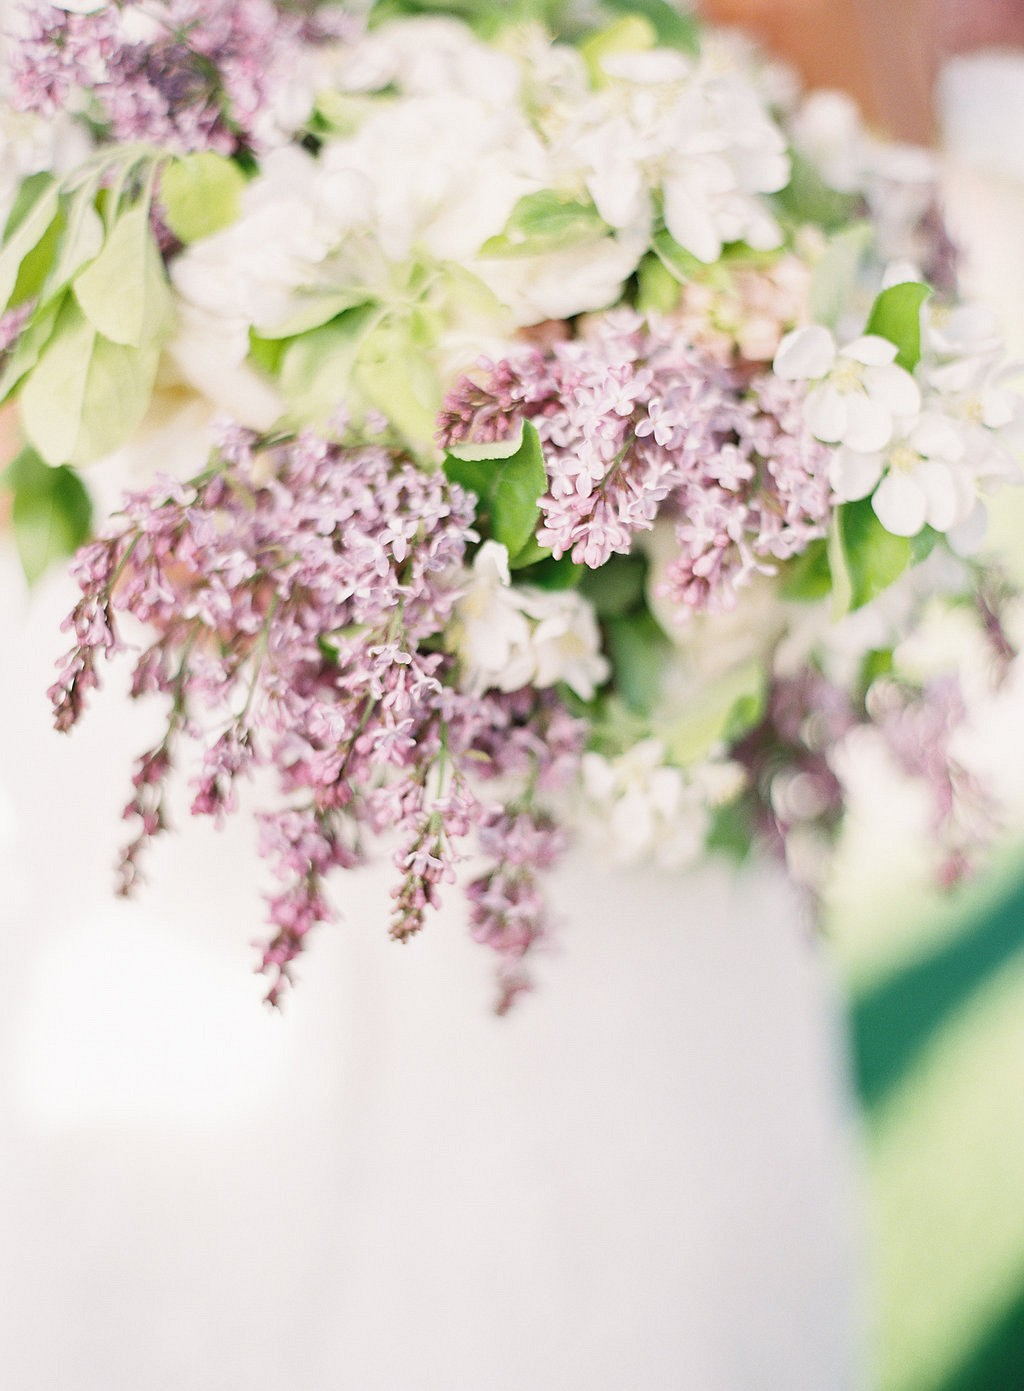 Pale lilac tones for a spring bridal bouquet